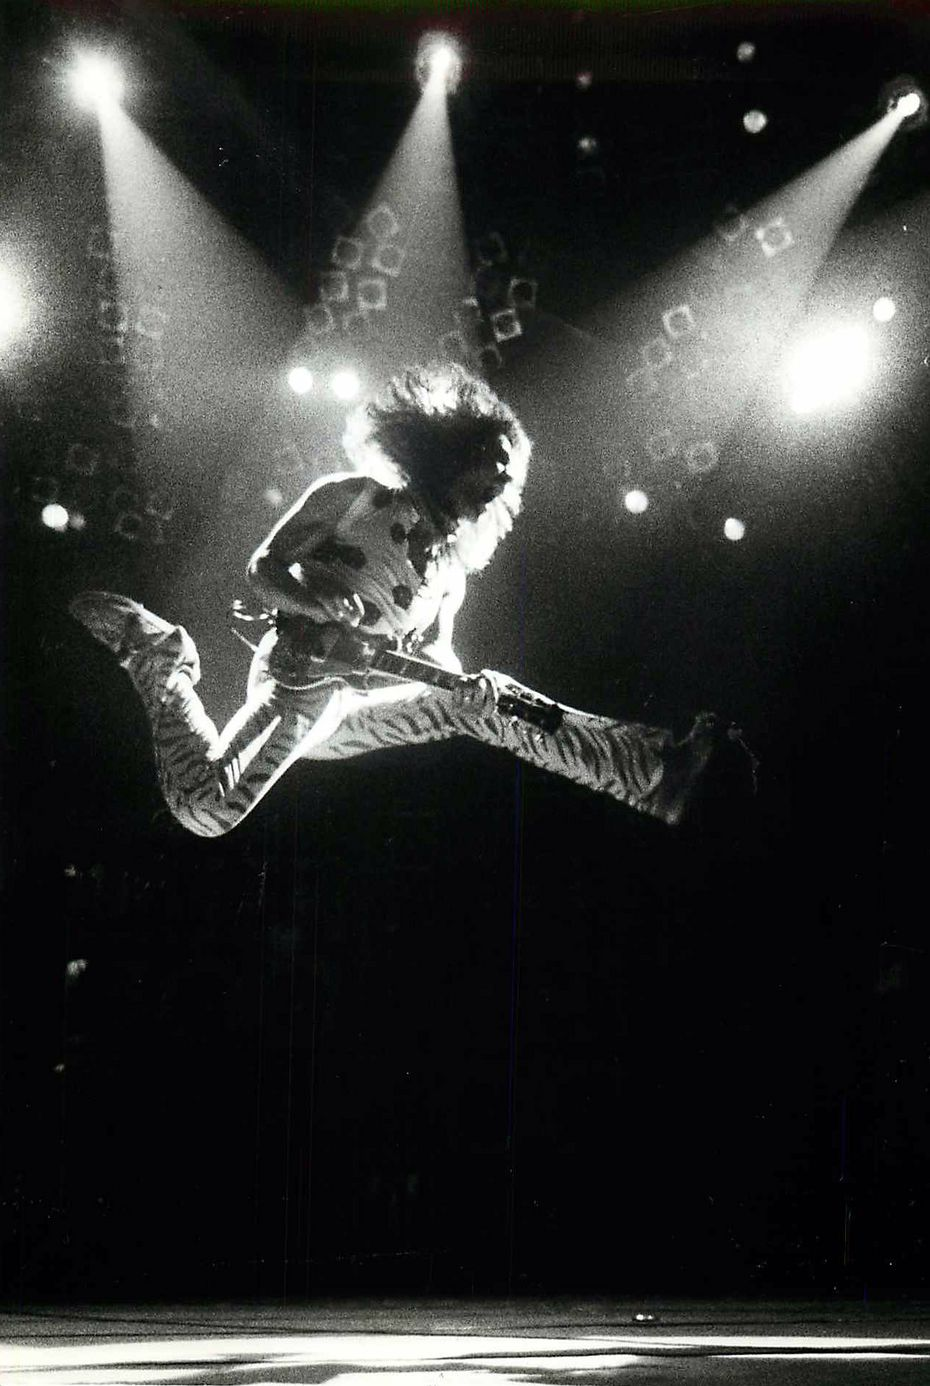 Eddie Van Halen leaps into the air at Reunion Arena in Dallas in July 1984.